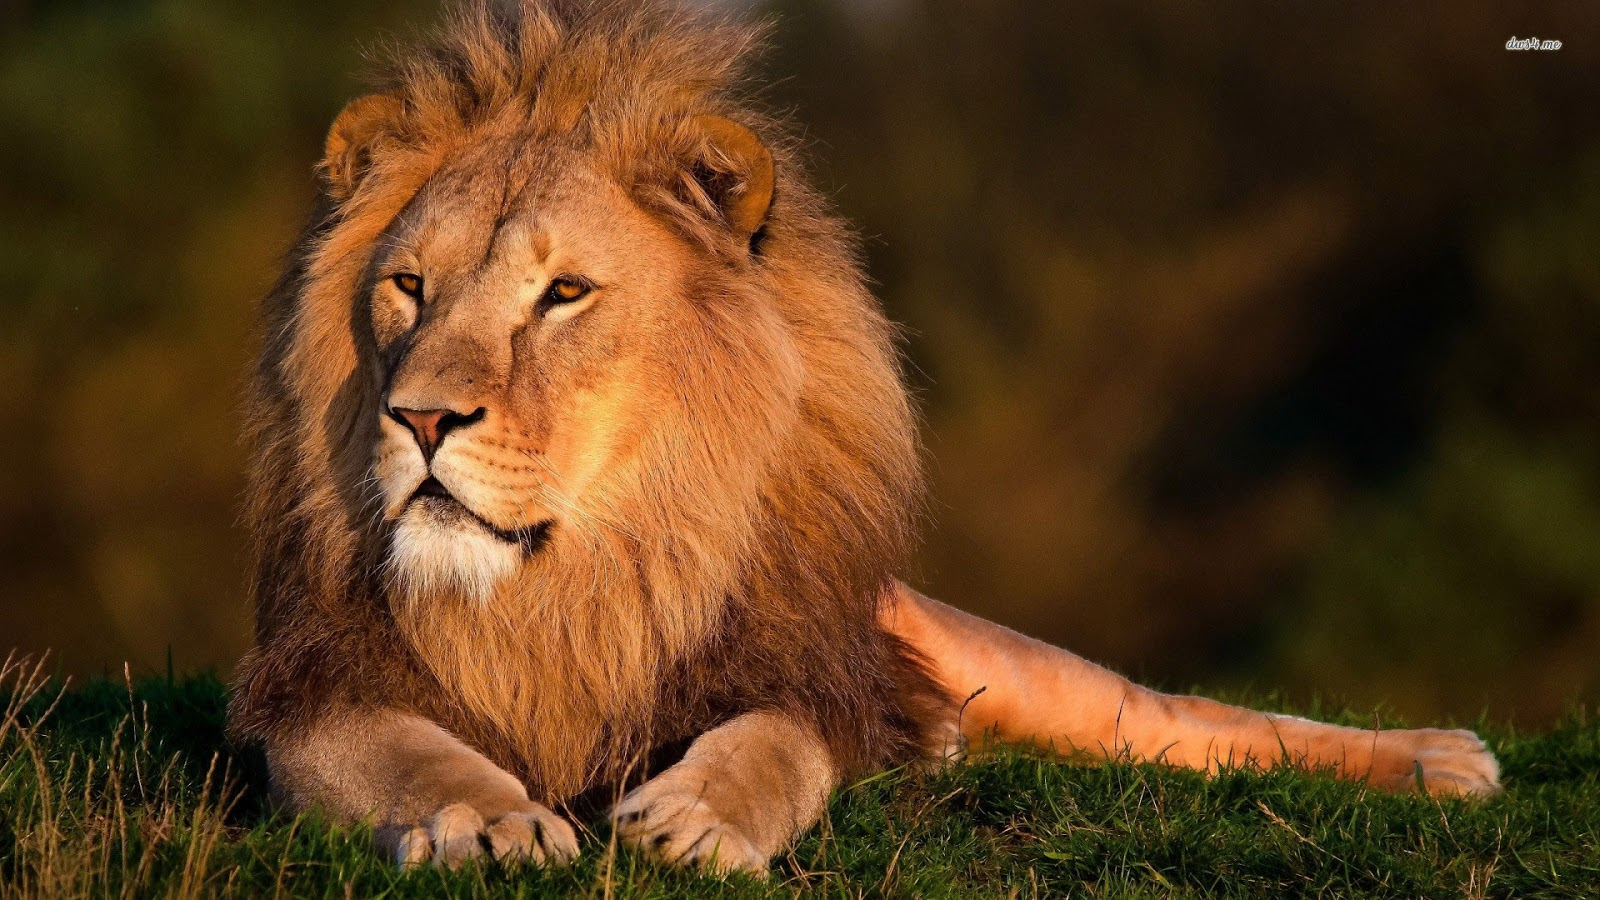 lions wallpapers lion hd wallpapers lion attack hd pictures lion lion 1600x900